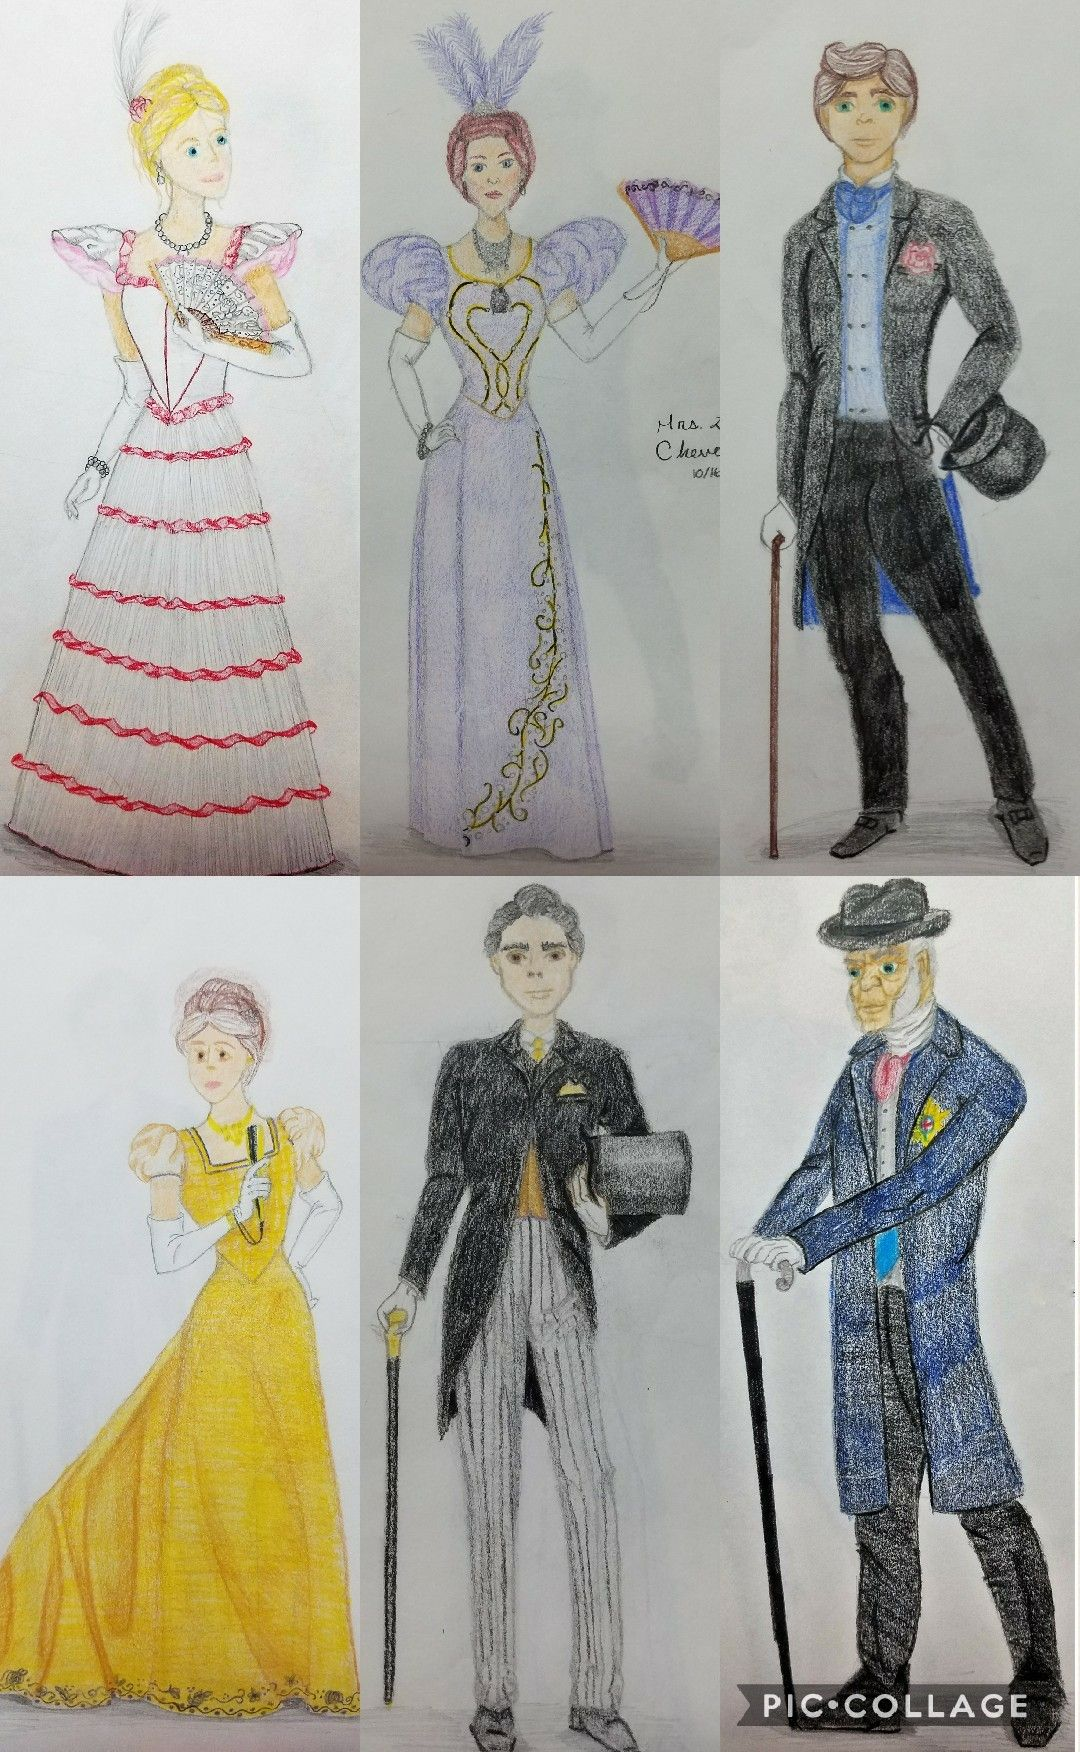 Gustavus Adolphus College Fall 2016 Costume Craft u0026 Design Course  An Ideal Husband  by Oscar Wilde Historically Accurate 1895 Act I Scene 1 (Top Miss ... & Gustavus Adolphus College Fall 2016 Costume Craft u0026 Design Course ...